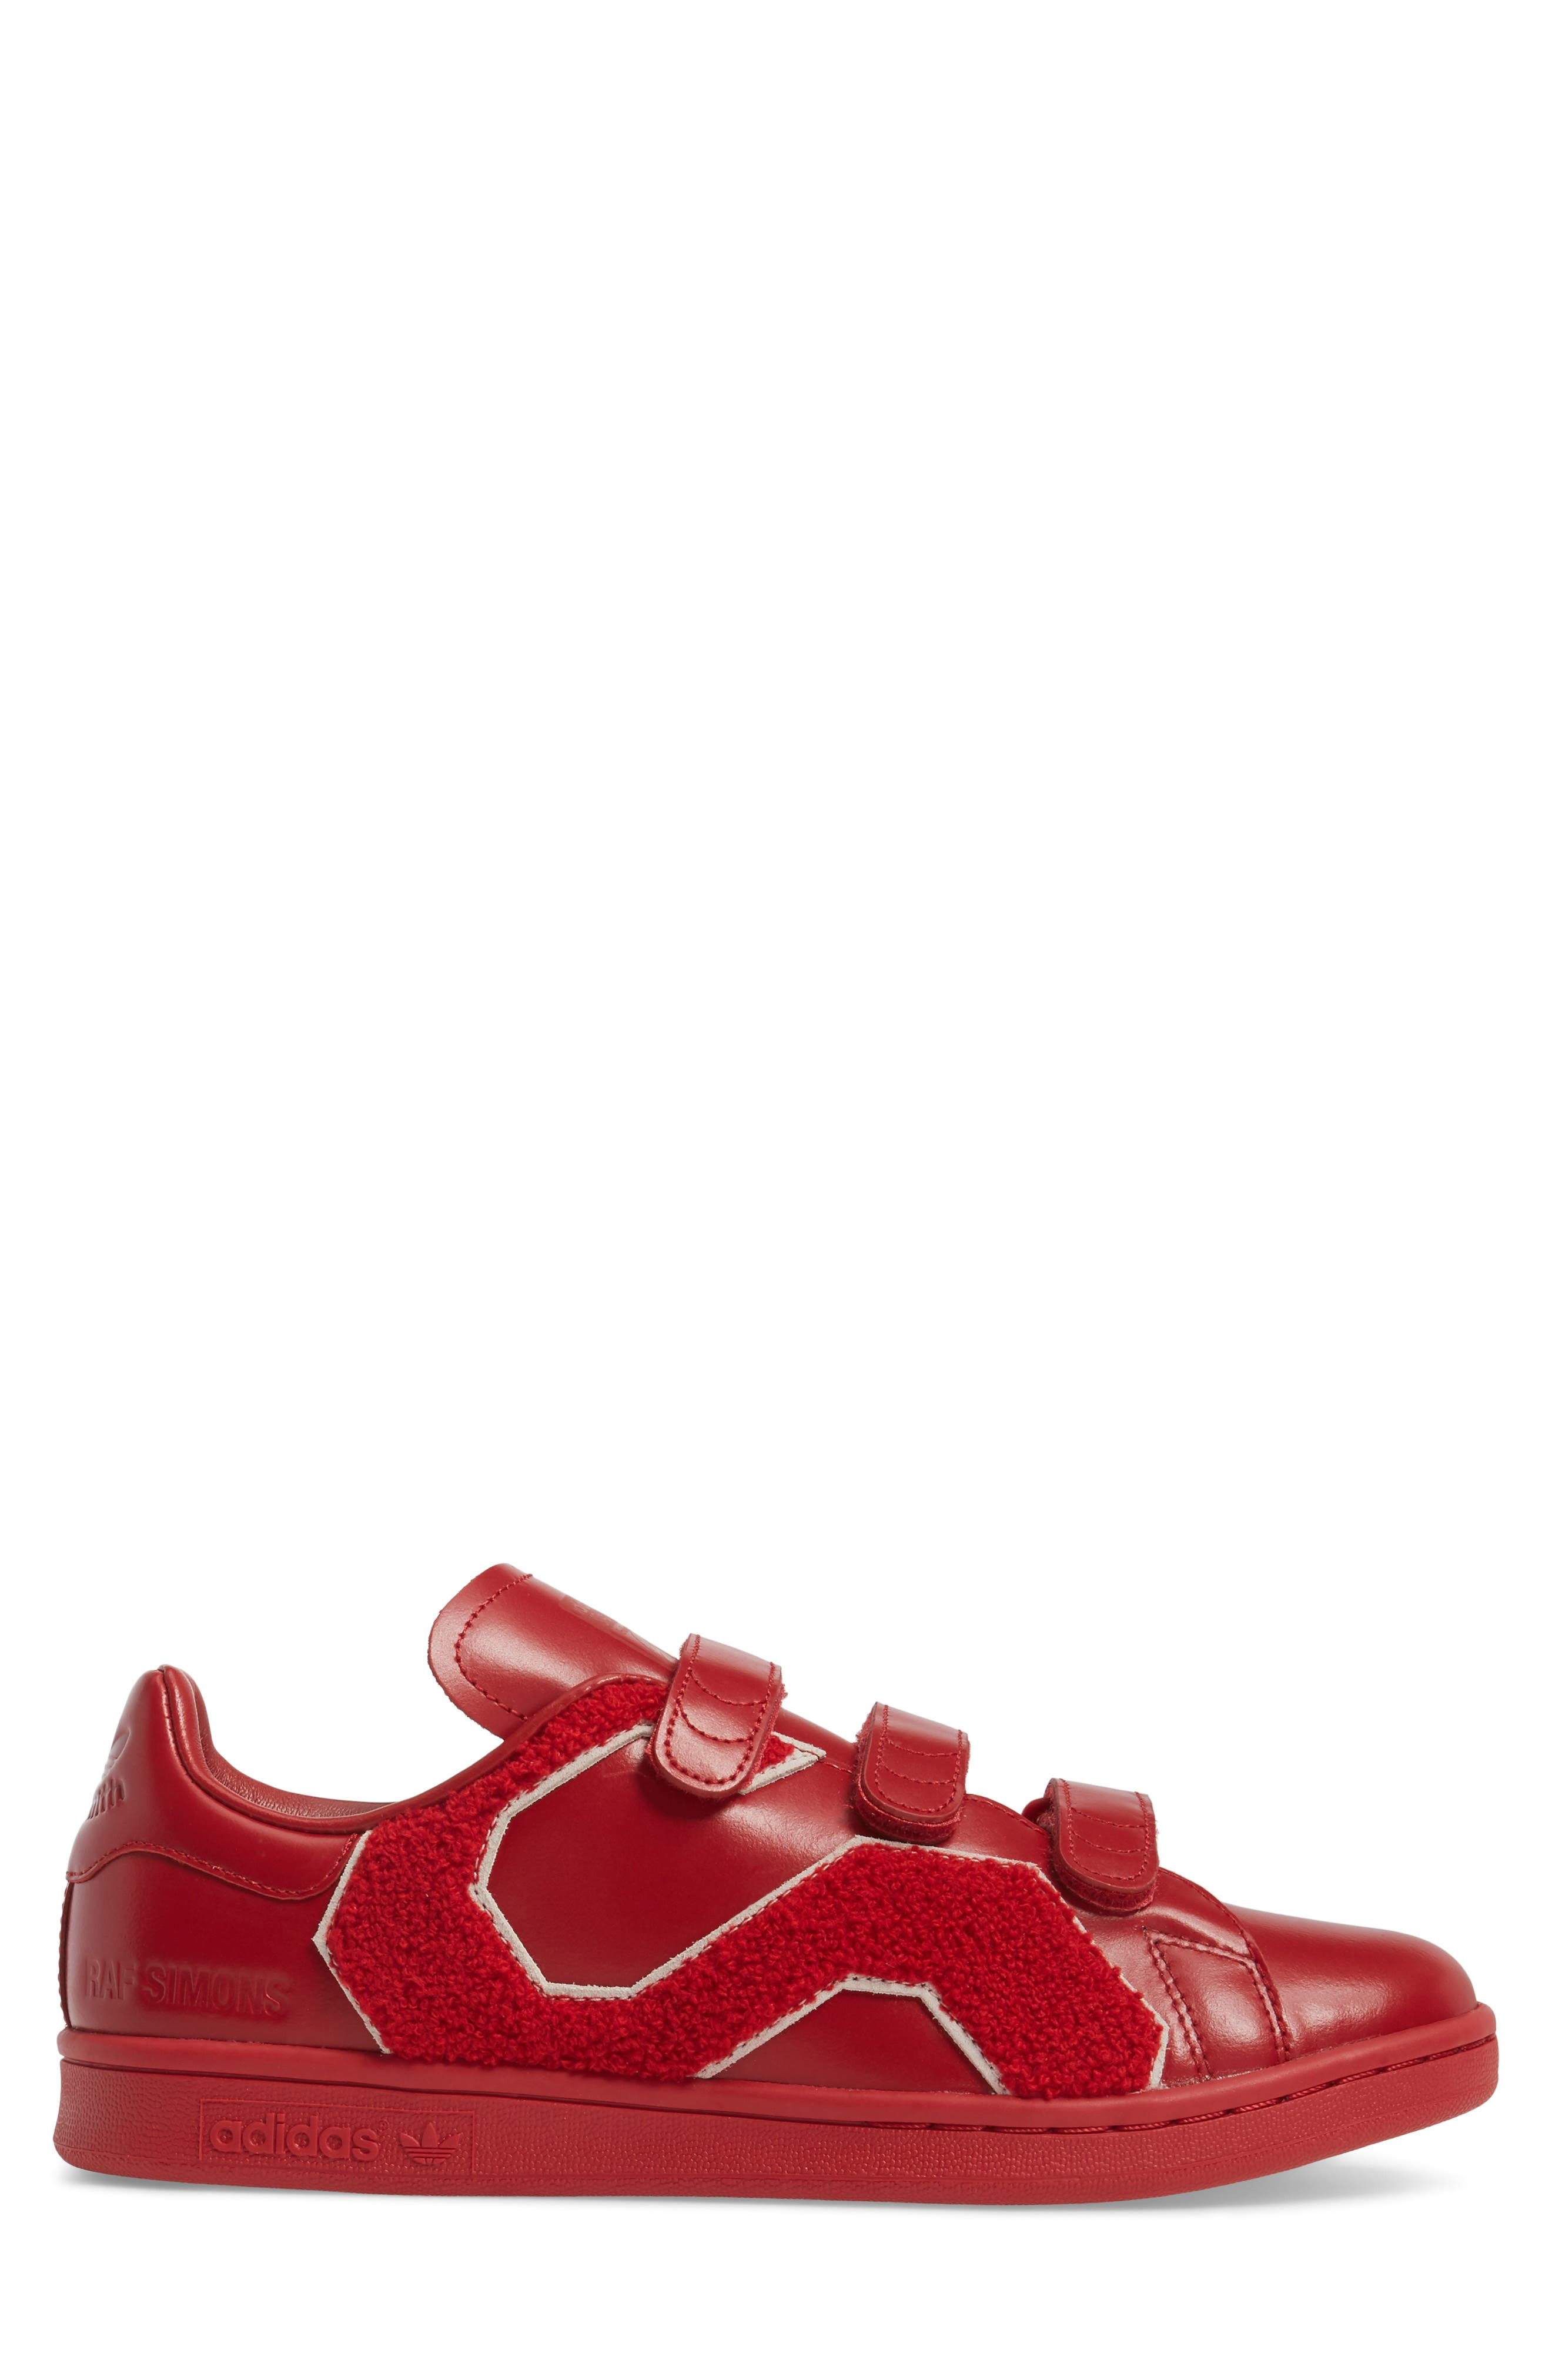 adidas by Raf Simons Stan Smith Sneaker,                             Alternate thumbnail 3, color,                             600